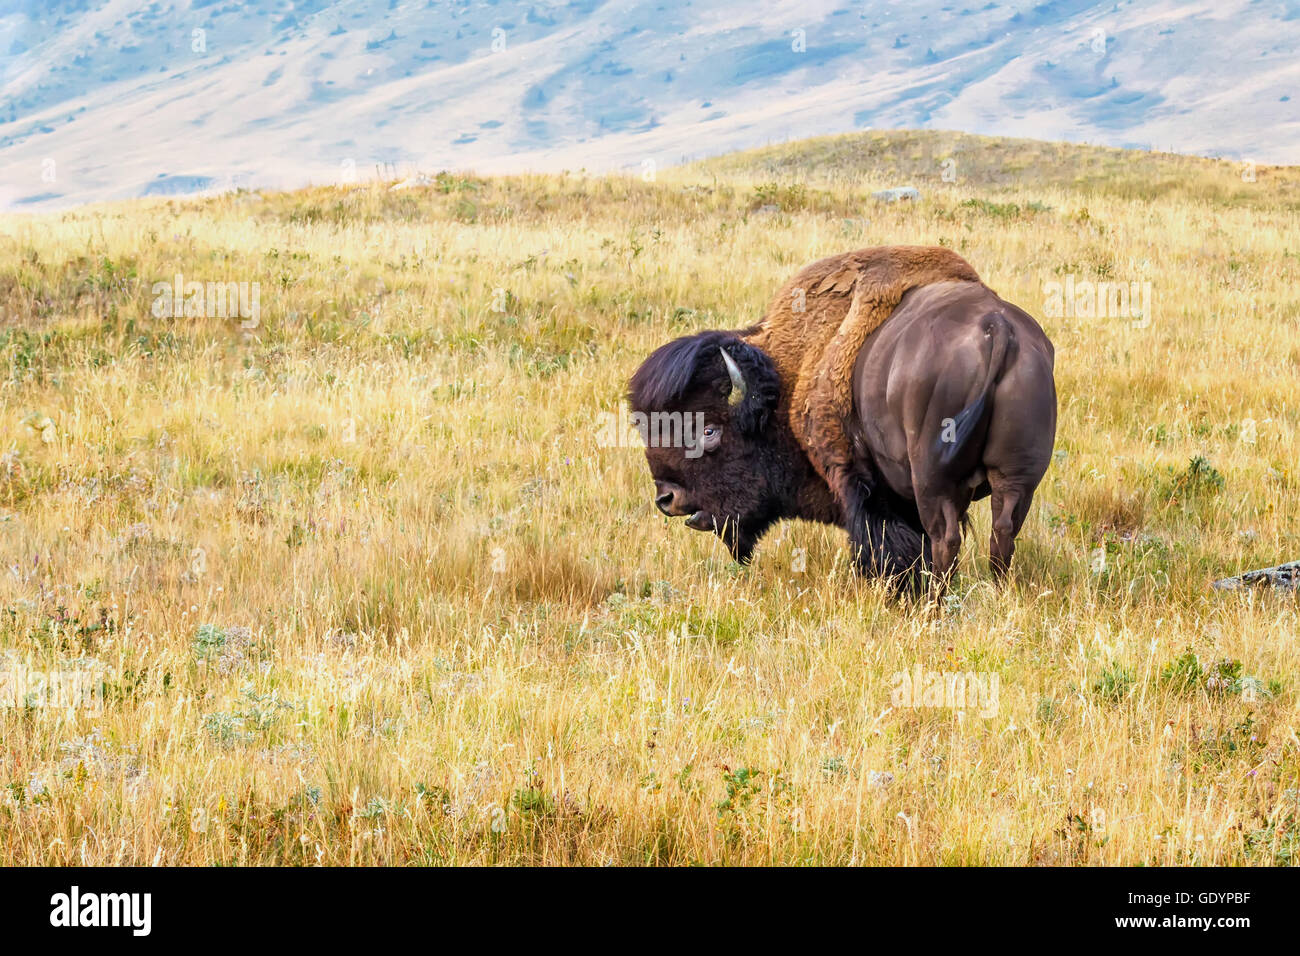 A bison on the prairie - Stock Image